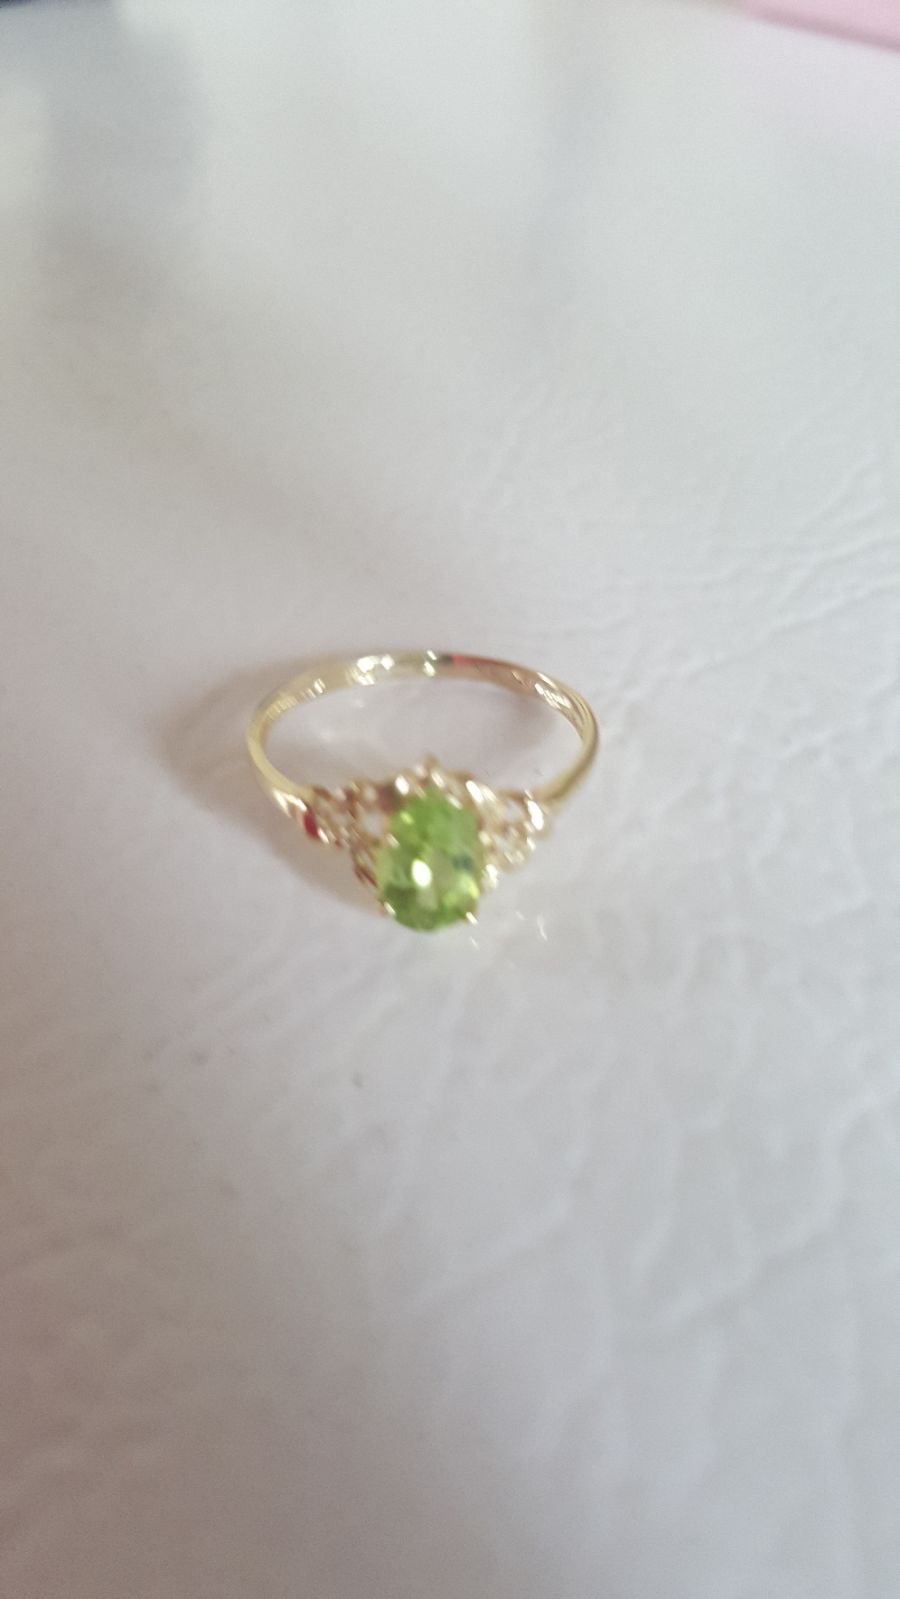 Solid 10kt Gold Genuine Peridot And Natural Diamond Tested Ring Size 7 5 Gold Was Xrayed And Verified As 10kt Diamonds T 10kt Gold Small Rings Stamped Rings